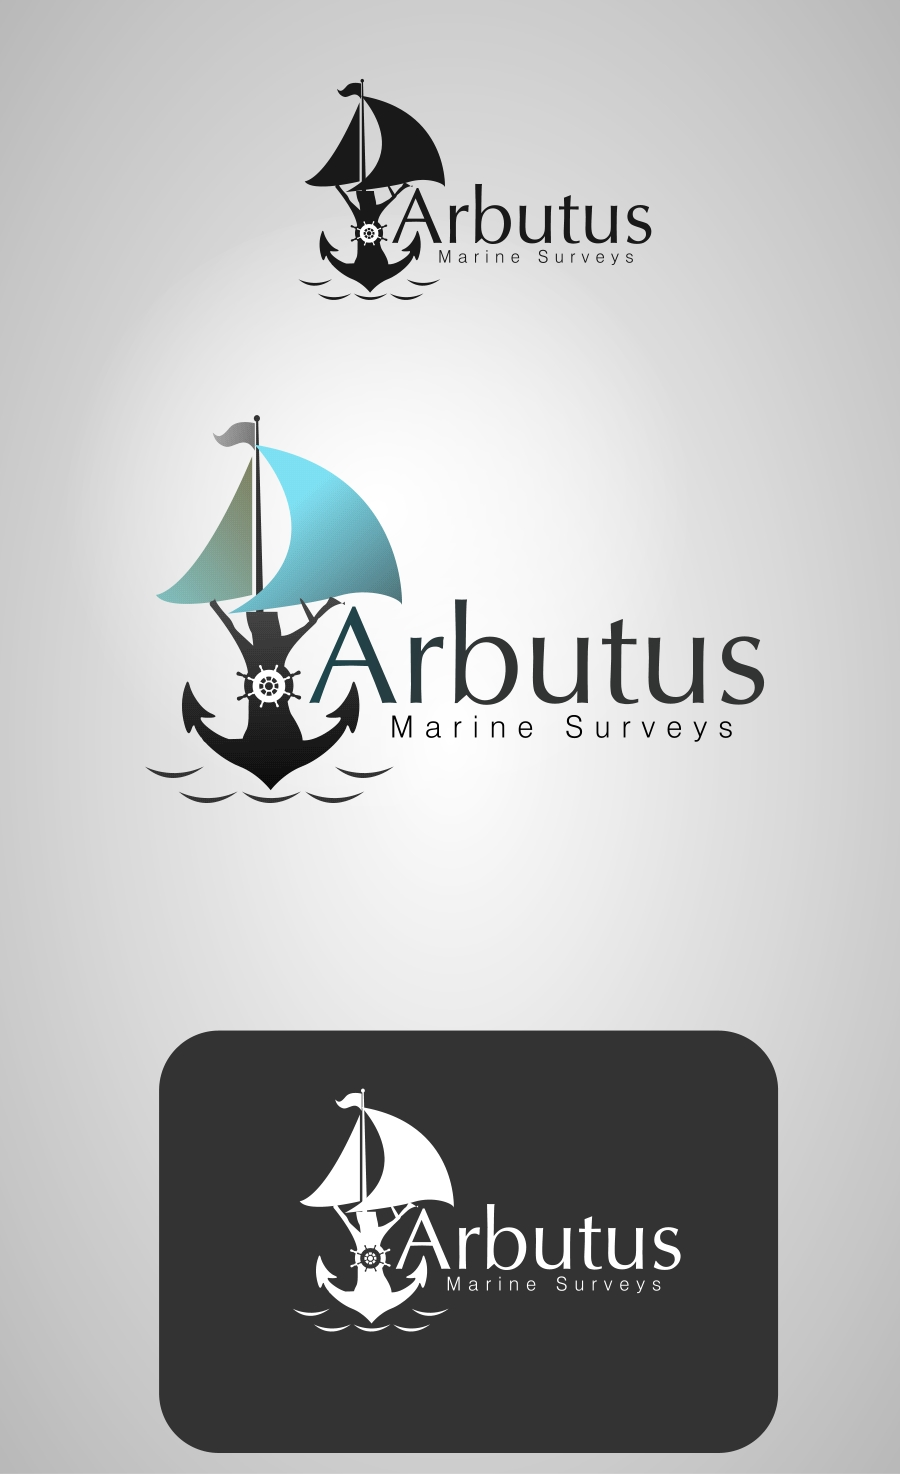 Logo Design by Private User - Entry No. 14 in the Logo Design Contest Professional Business Logo Design for Arbutus Marine Surveys.